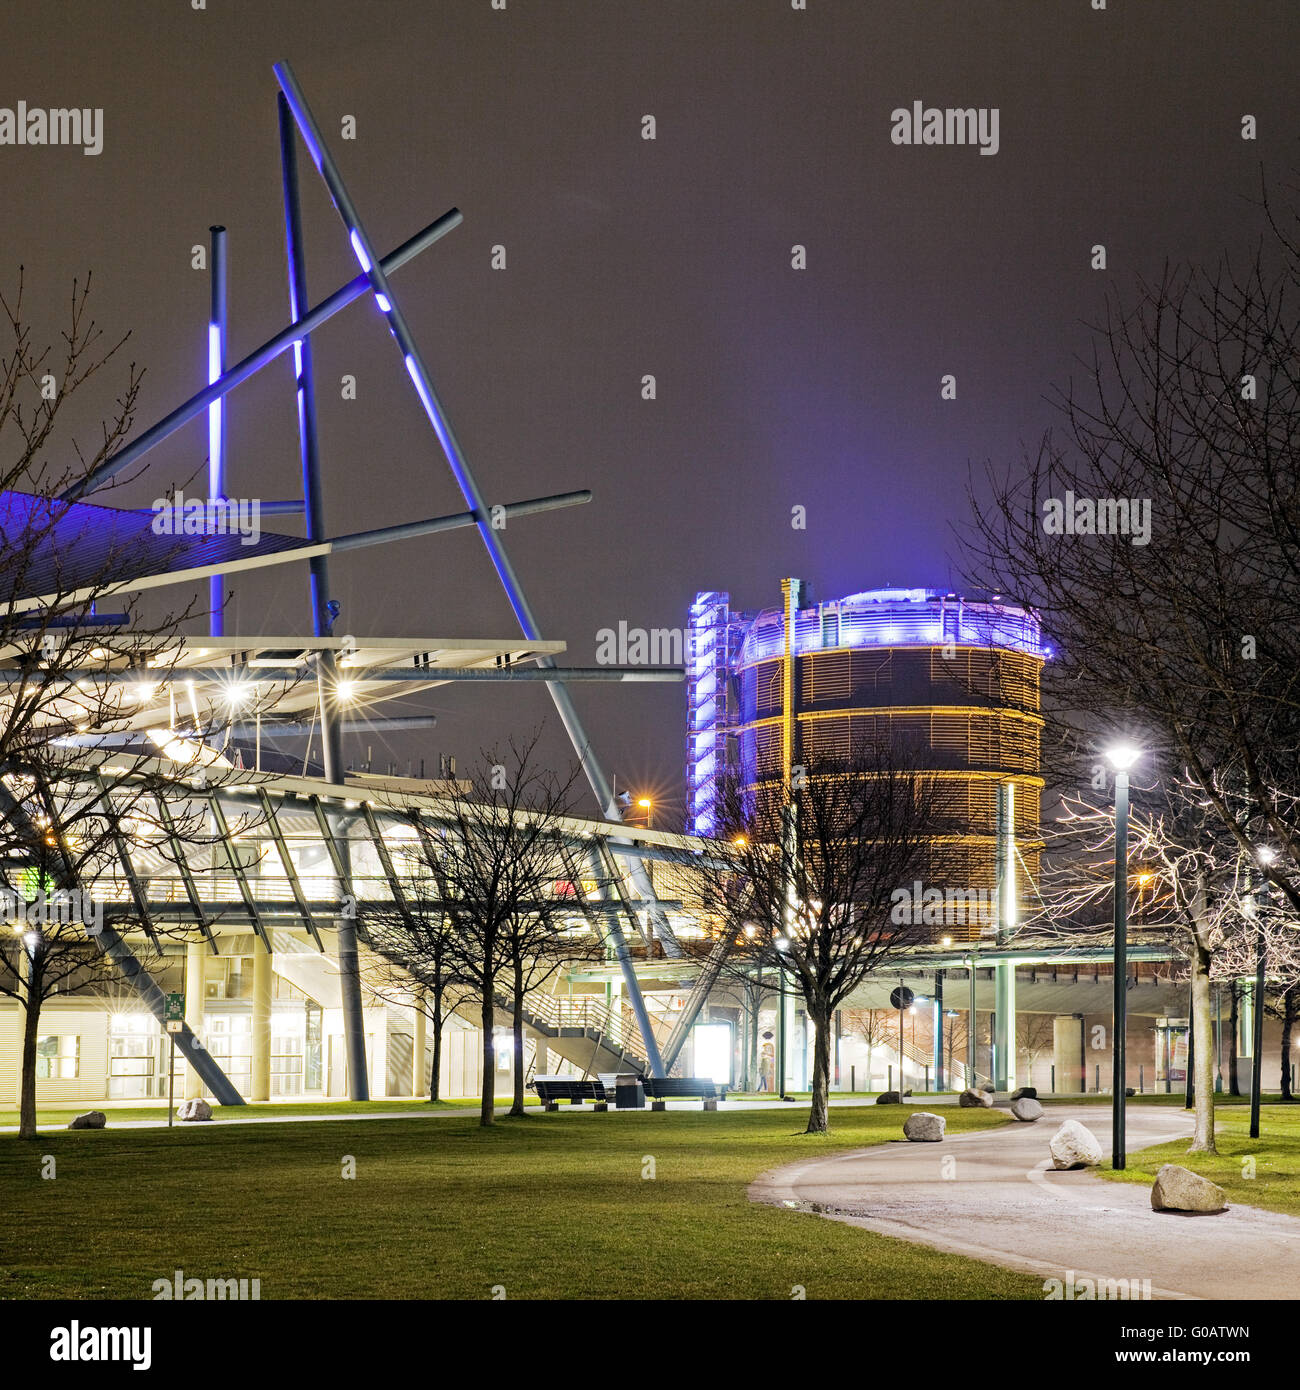 New center with Gasometer, Oberhausen, Germany Stock Photo